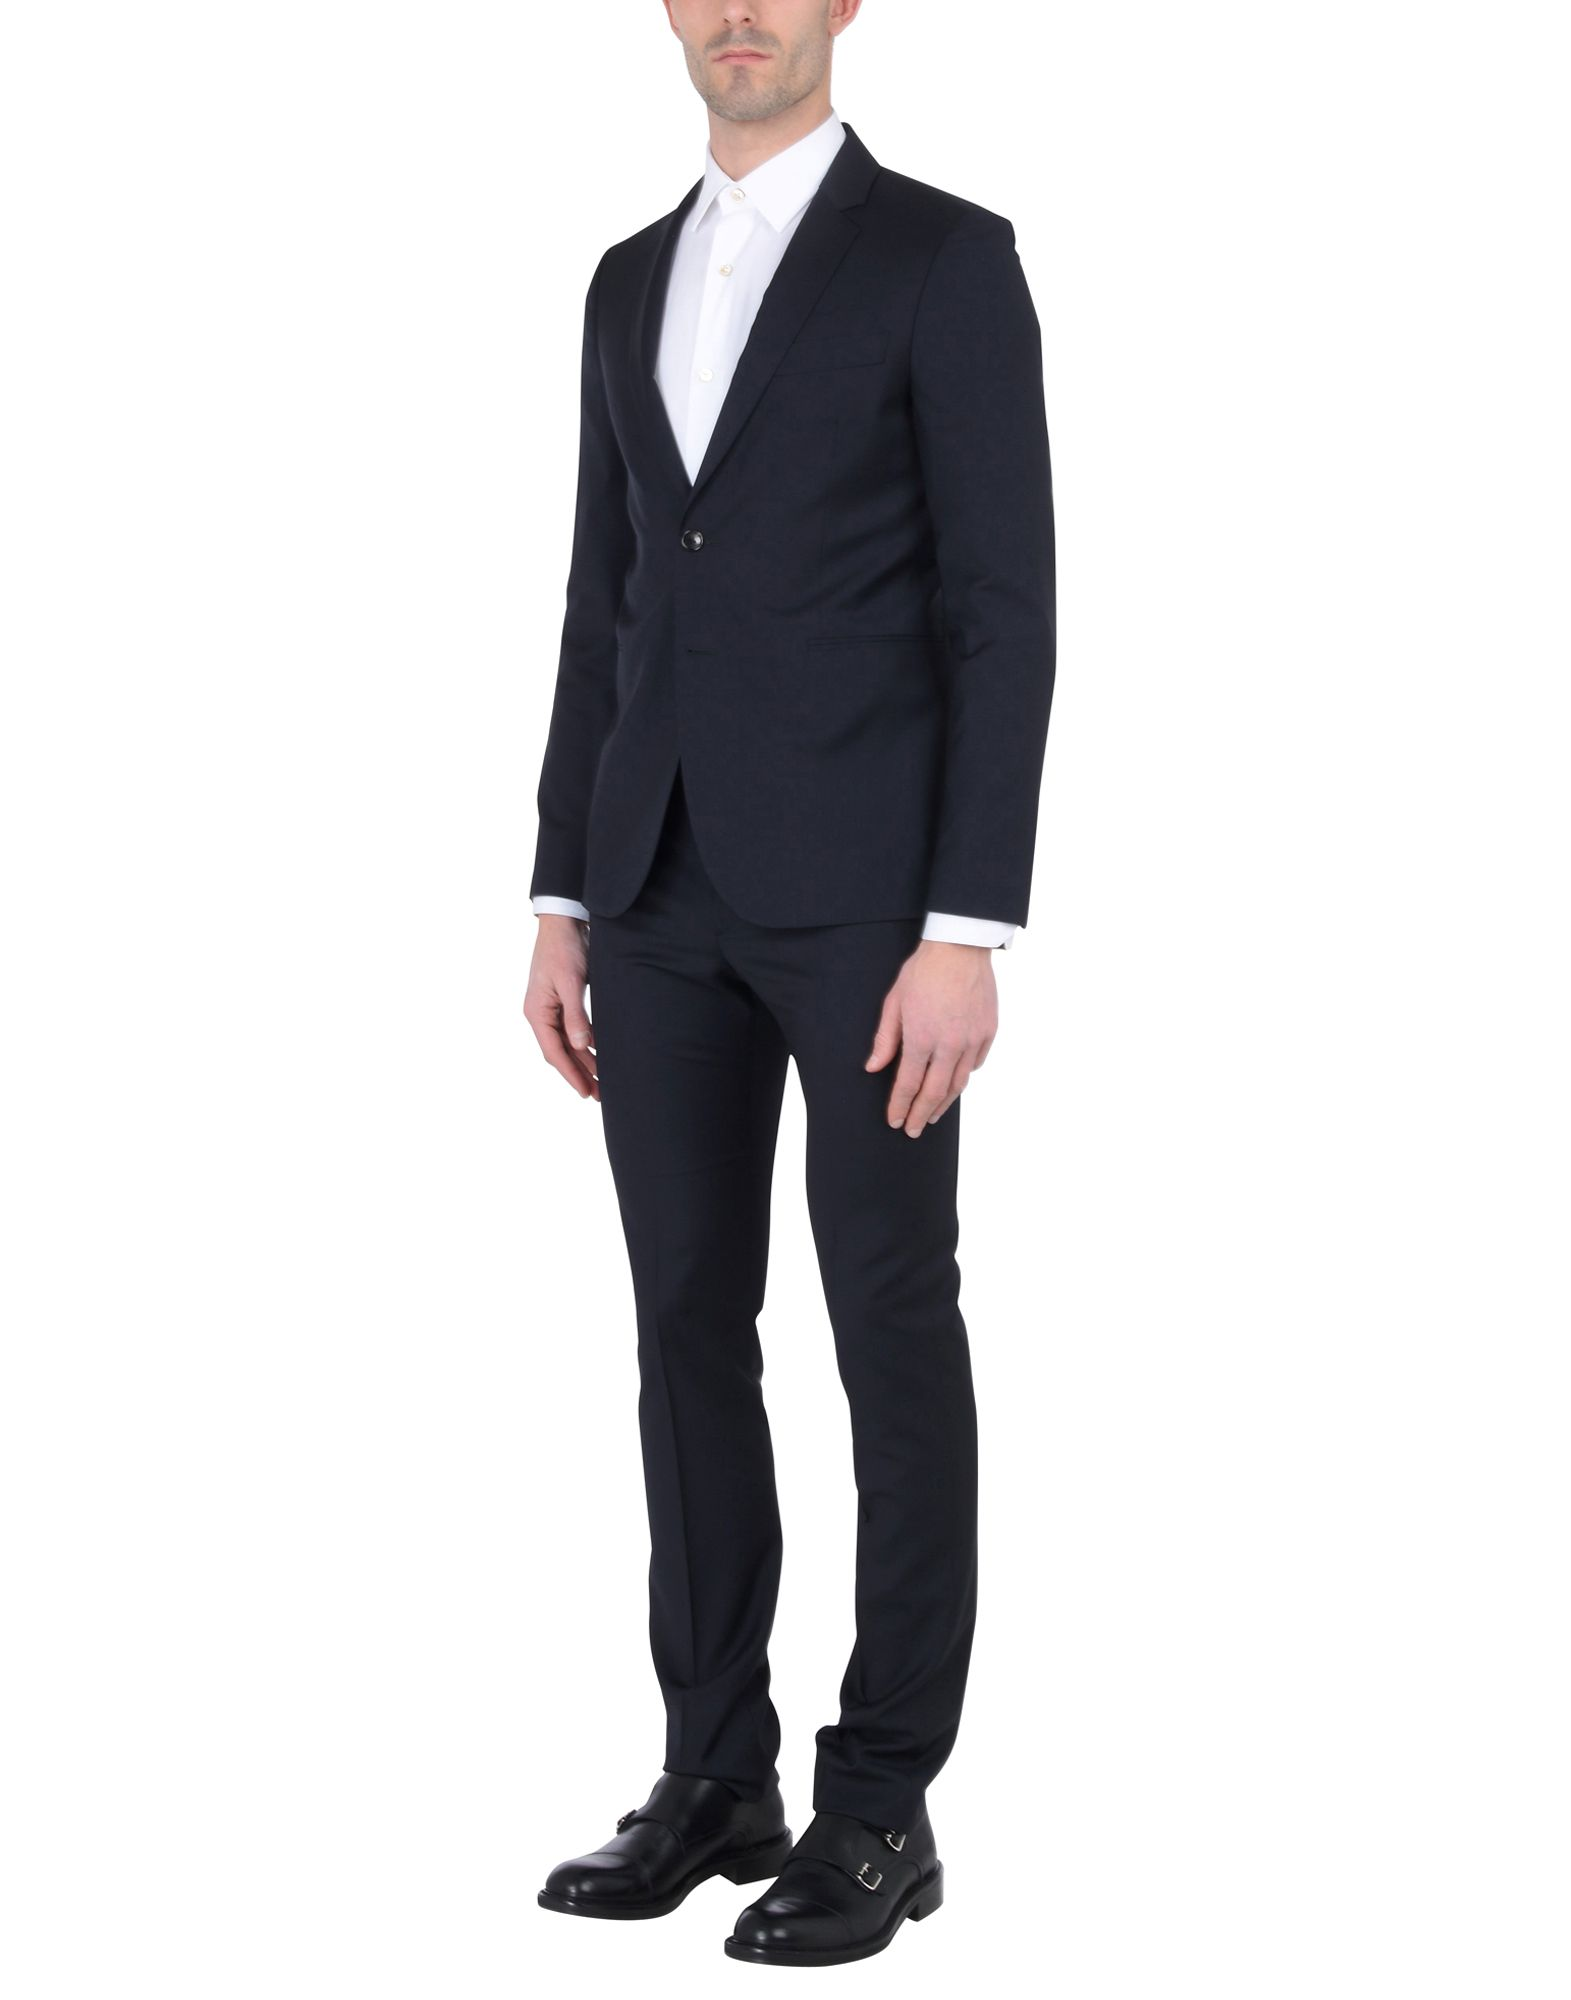 Abito Ps By Paul Smith Mens Suit Fully Lined - Uomo - Acquista online su